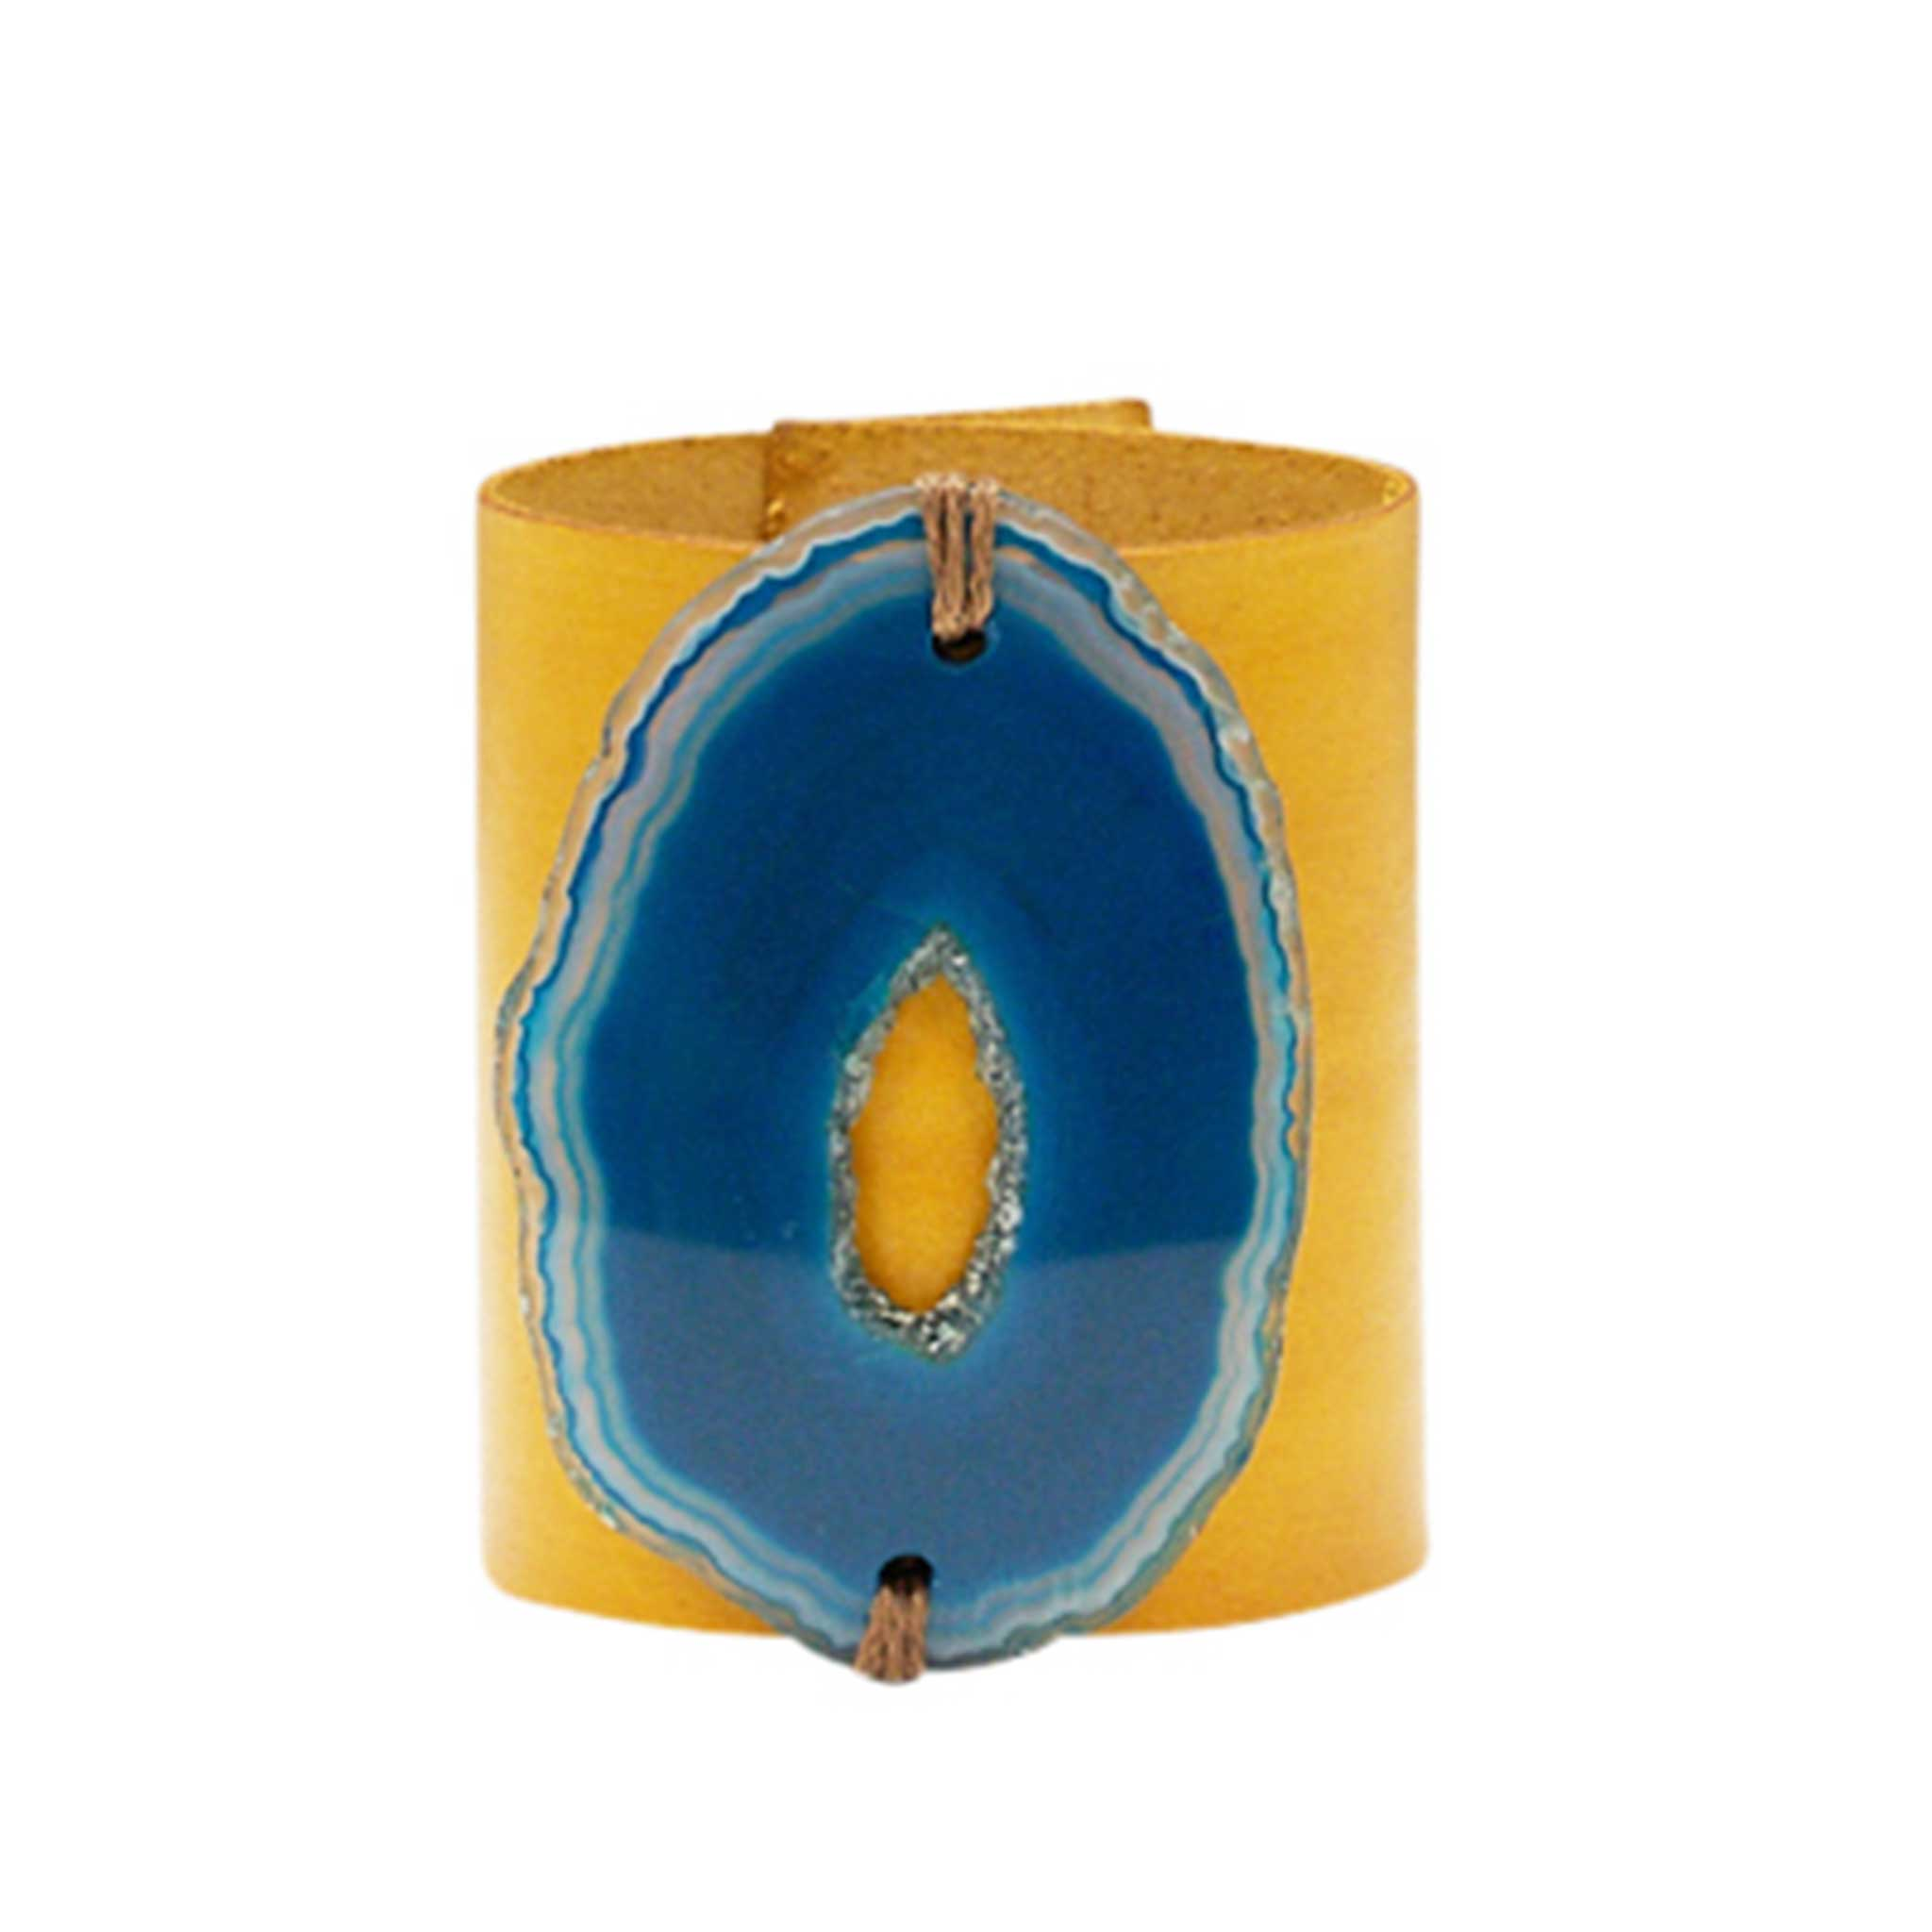 HANDCRAFTED CUFF - YELLOW LEATHER BLUE AGATE - 6CMYEBL1.2